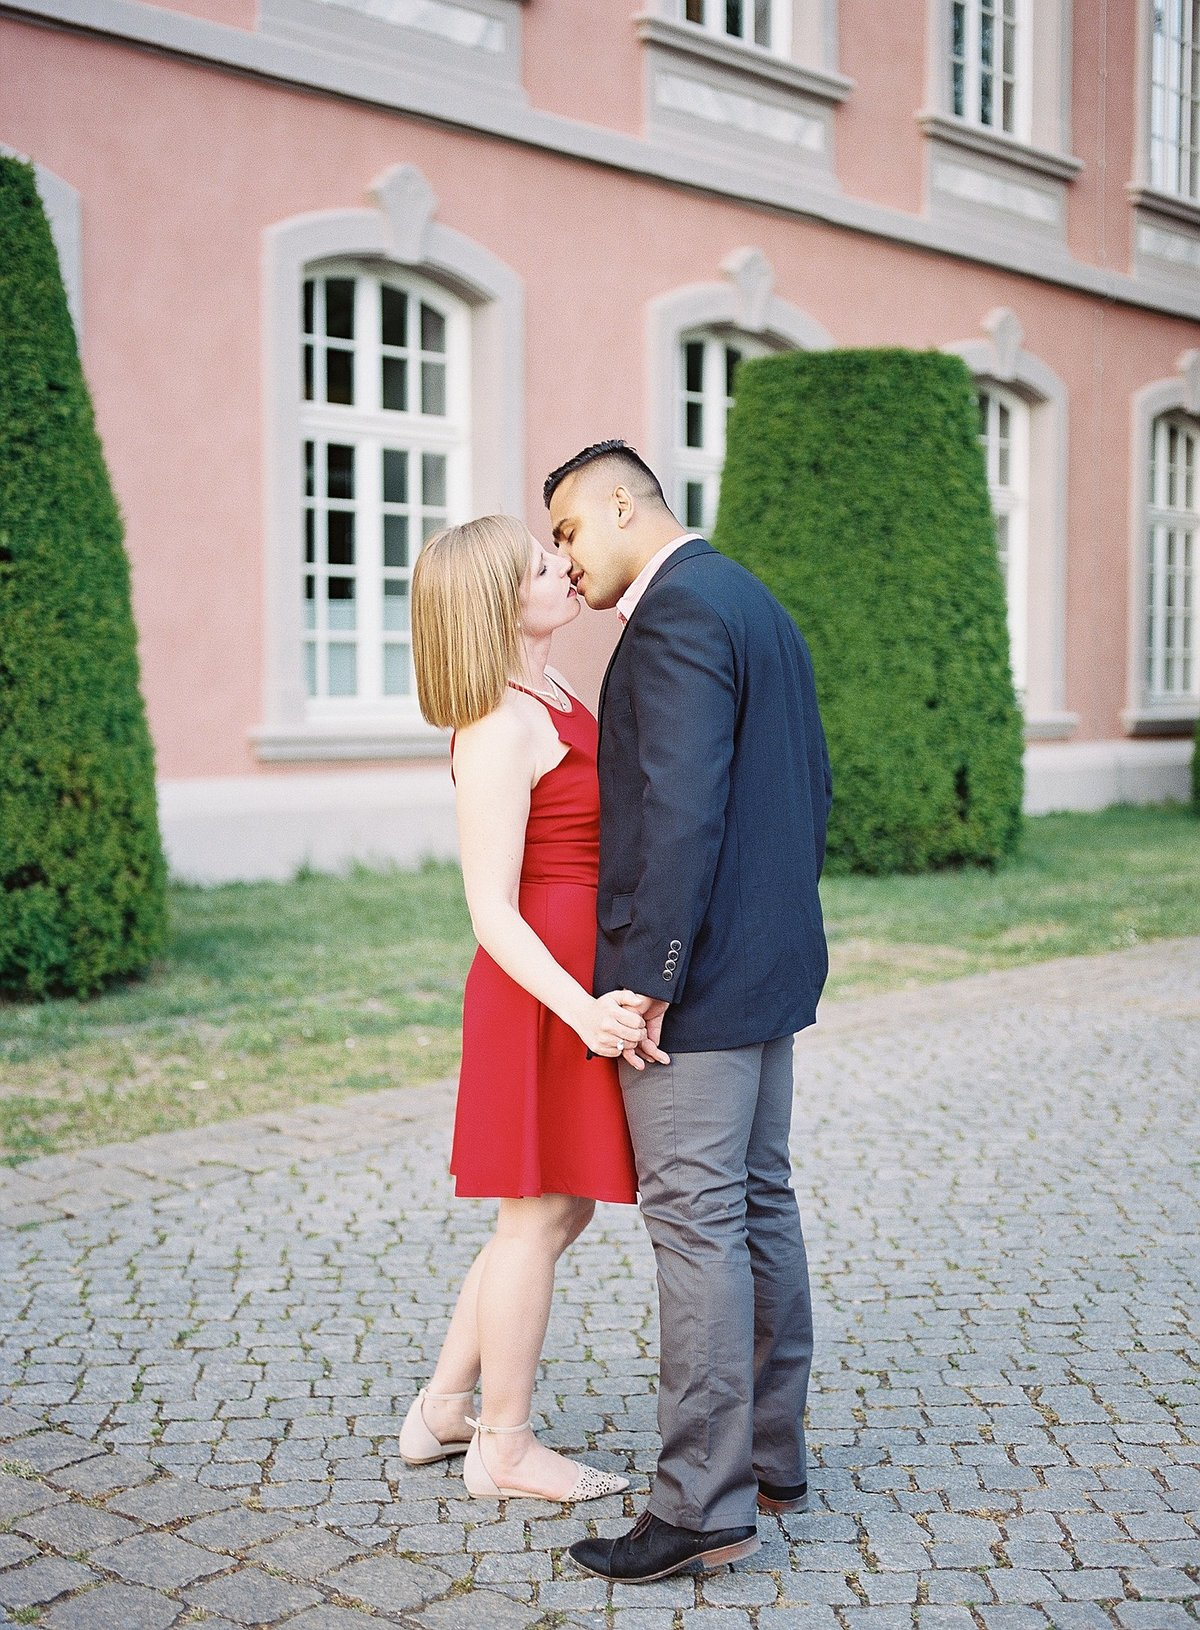 Romantic European Palace Anniversary Session photographed by France destination wedding photographer Alicia Yarrish Photography on film